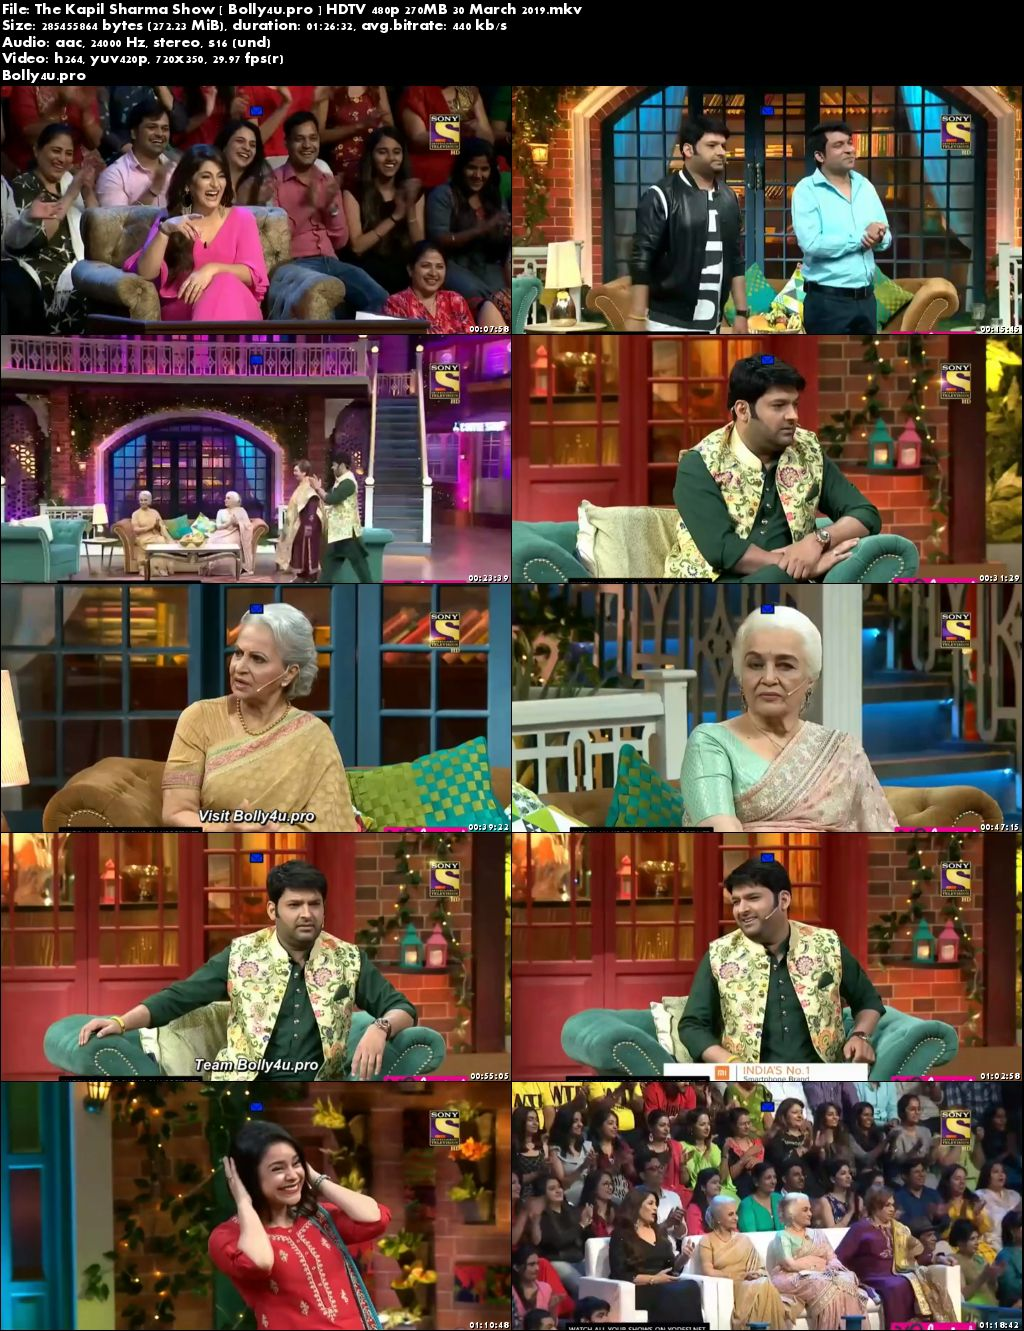 The Kapil Sharma Show HDTV 480p 250MB 30 March 2019 Download